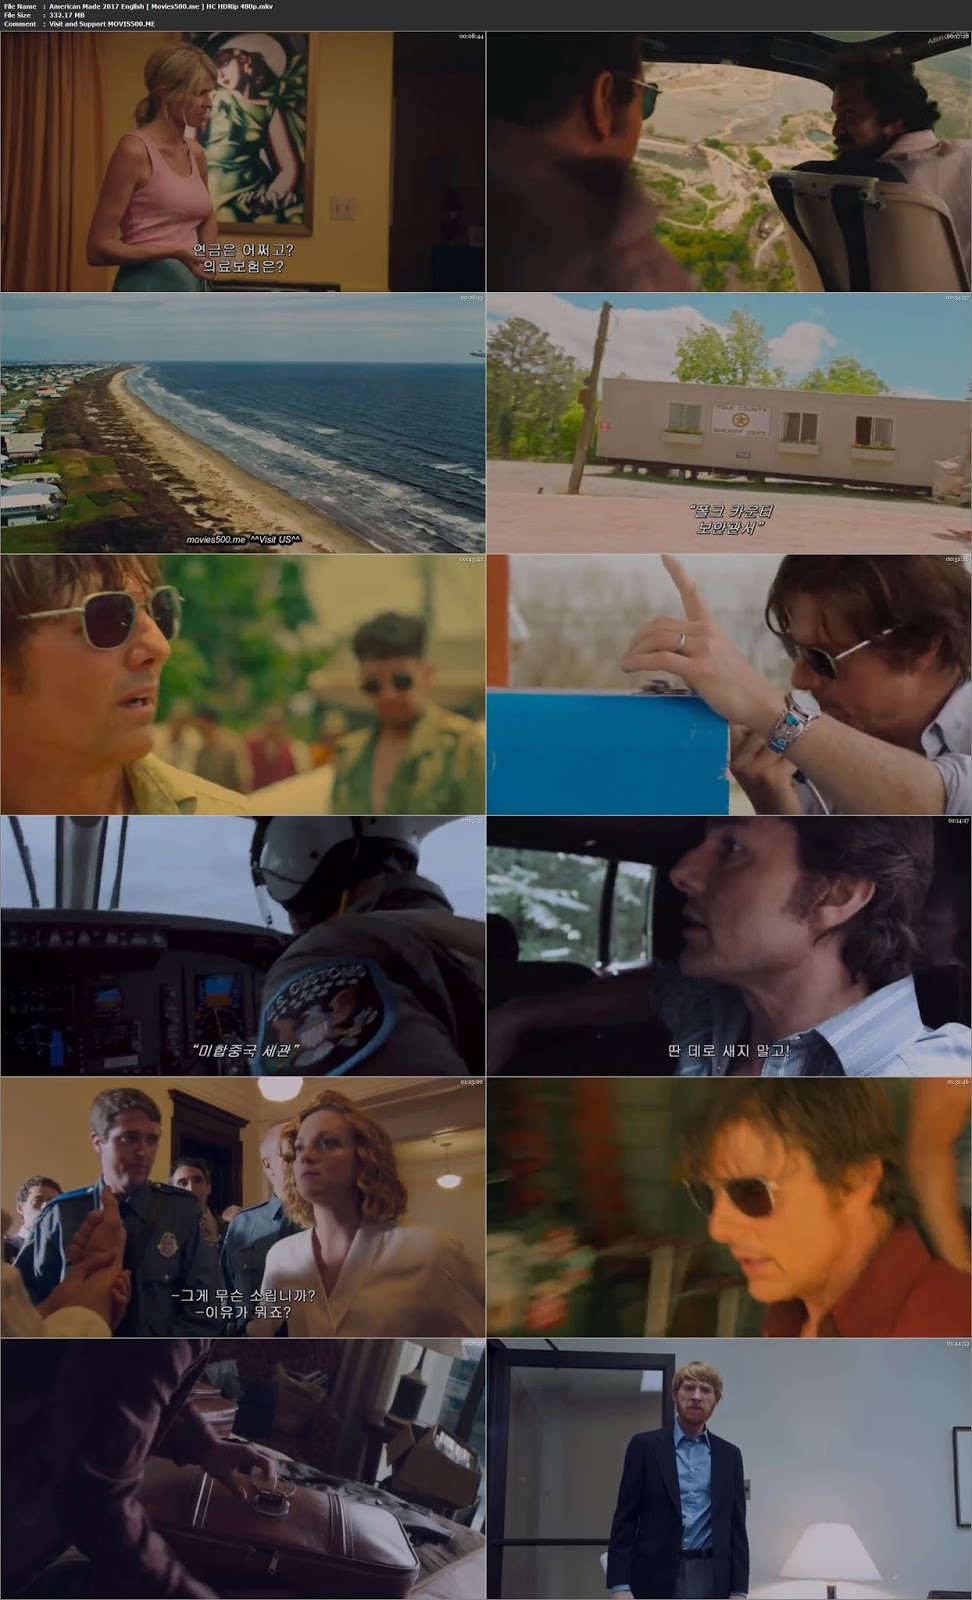 American Made 2017 Hollywood Full Movie 300MB HDRip 480p